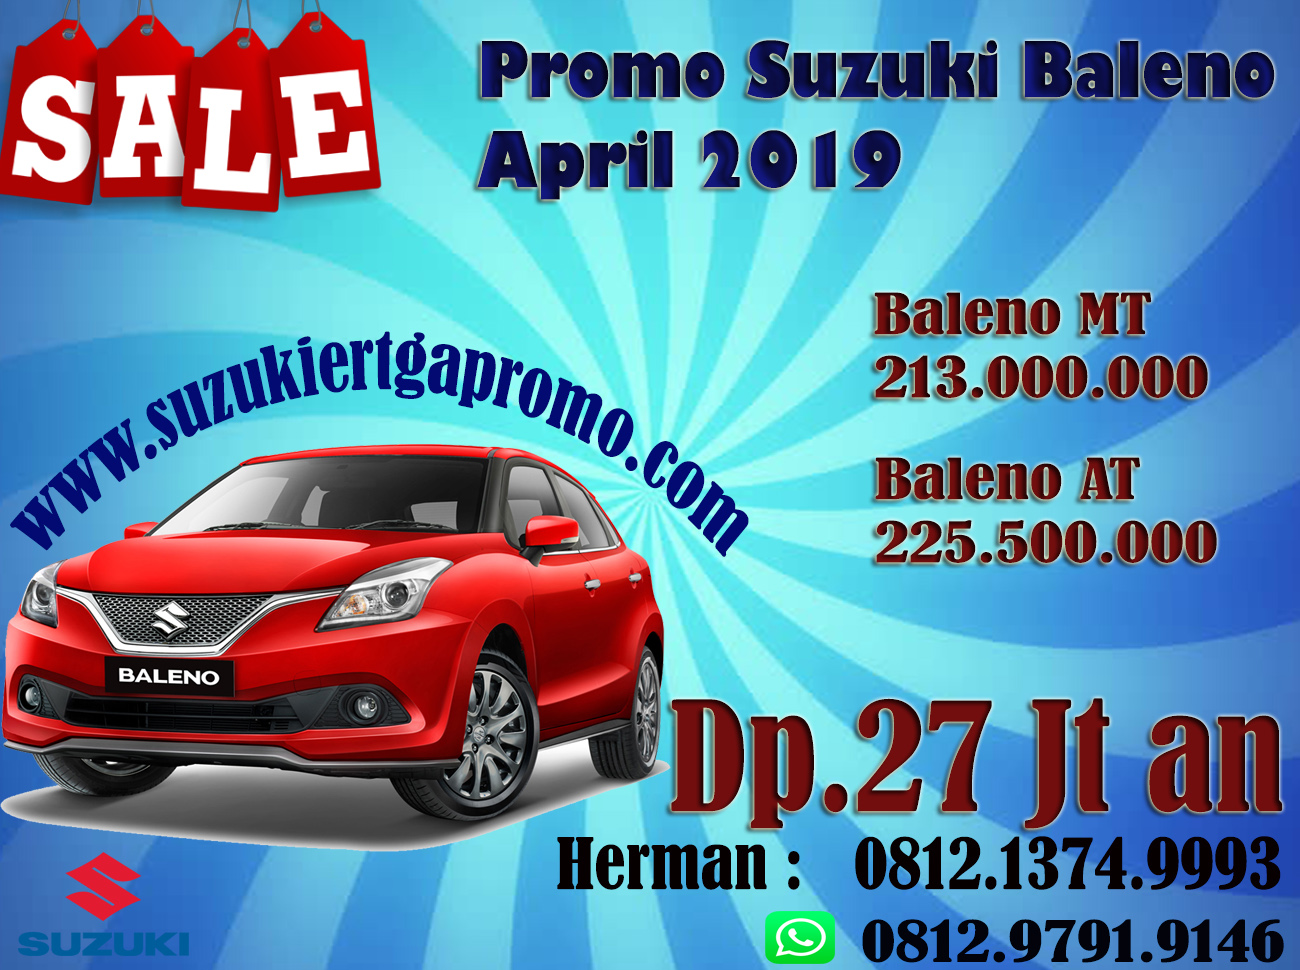 PROMO SUZUKI BALENO APRIL 2019